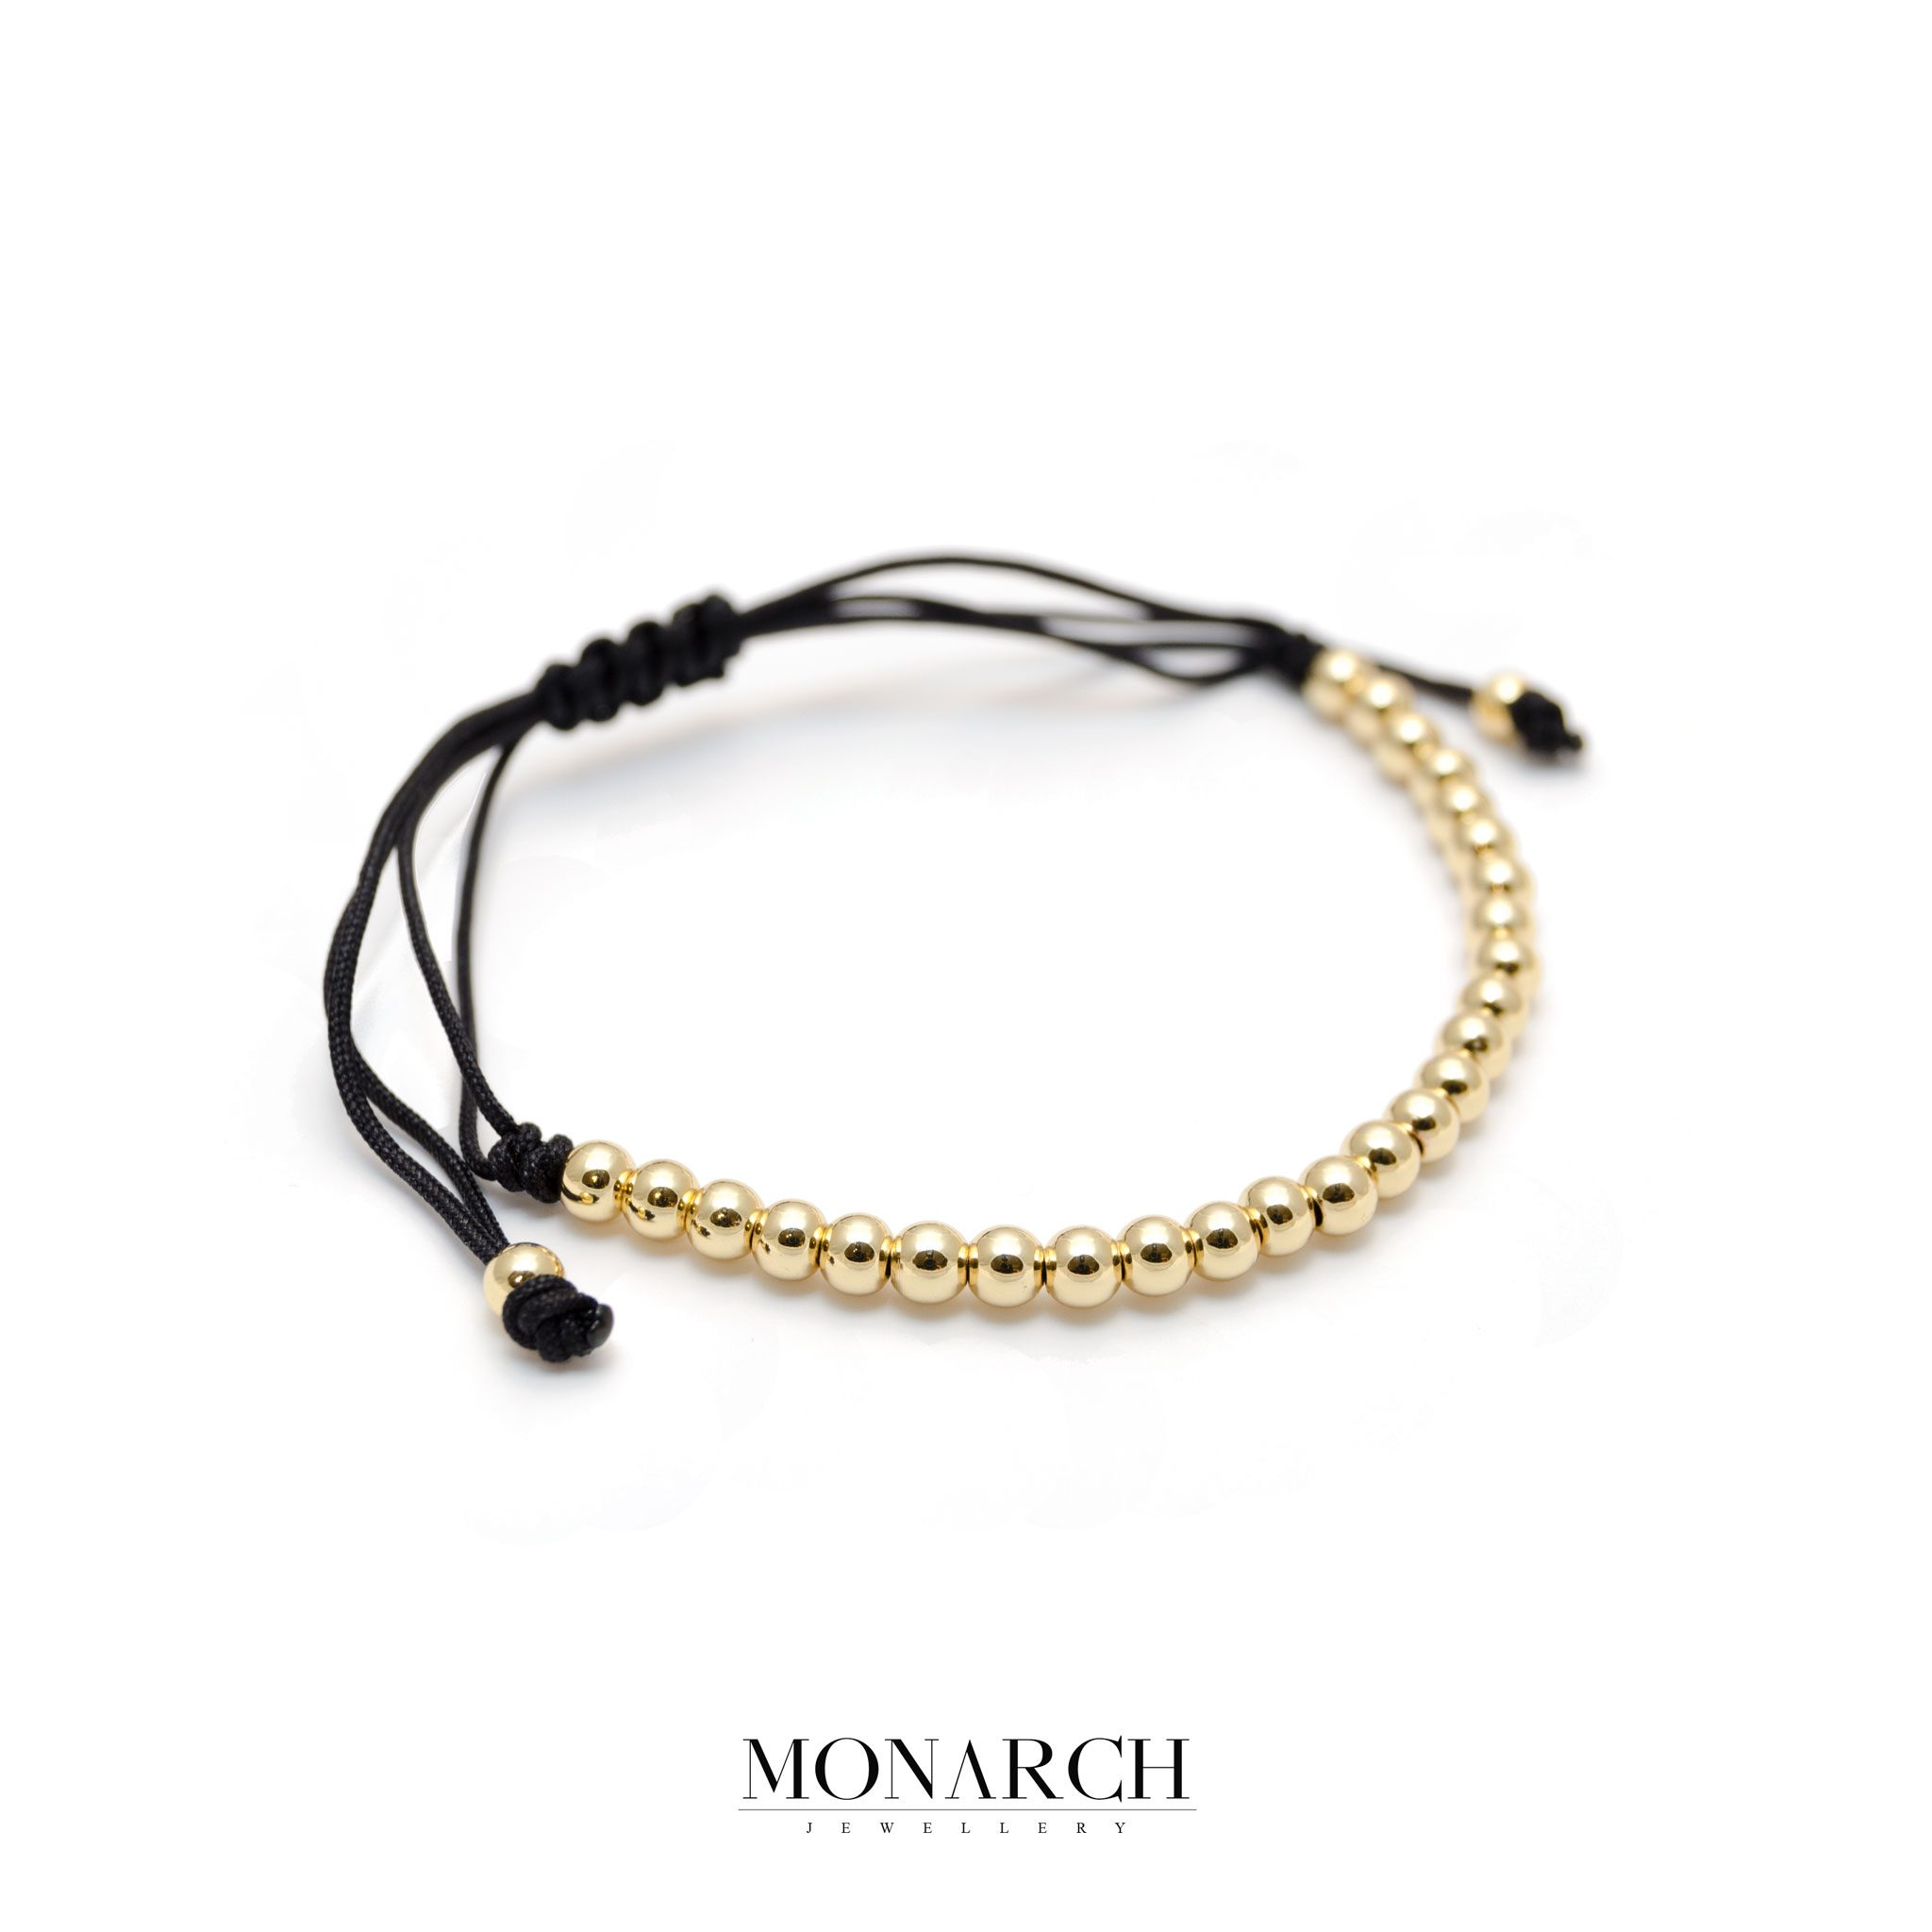 Monarch Jewellery 24k Gold Spectra Zircon Macrame Bracelet